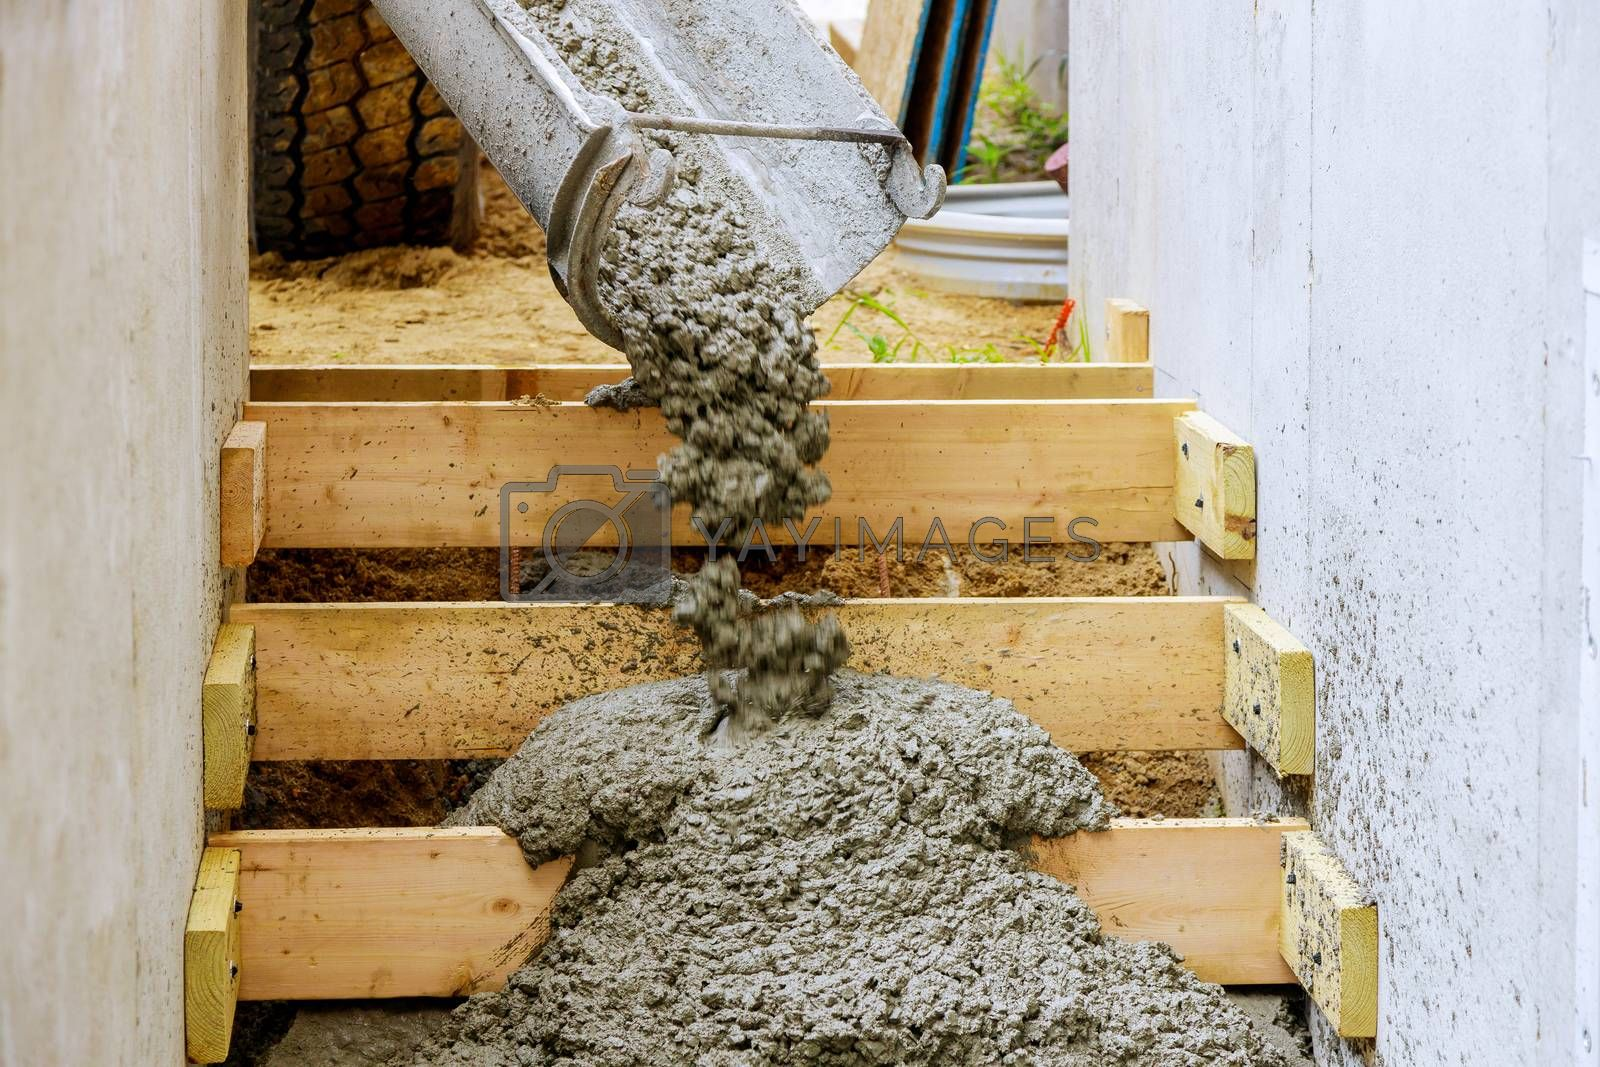 Pouring staircase in residential house building concreting steps with formwork